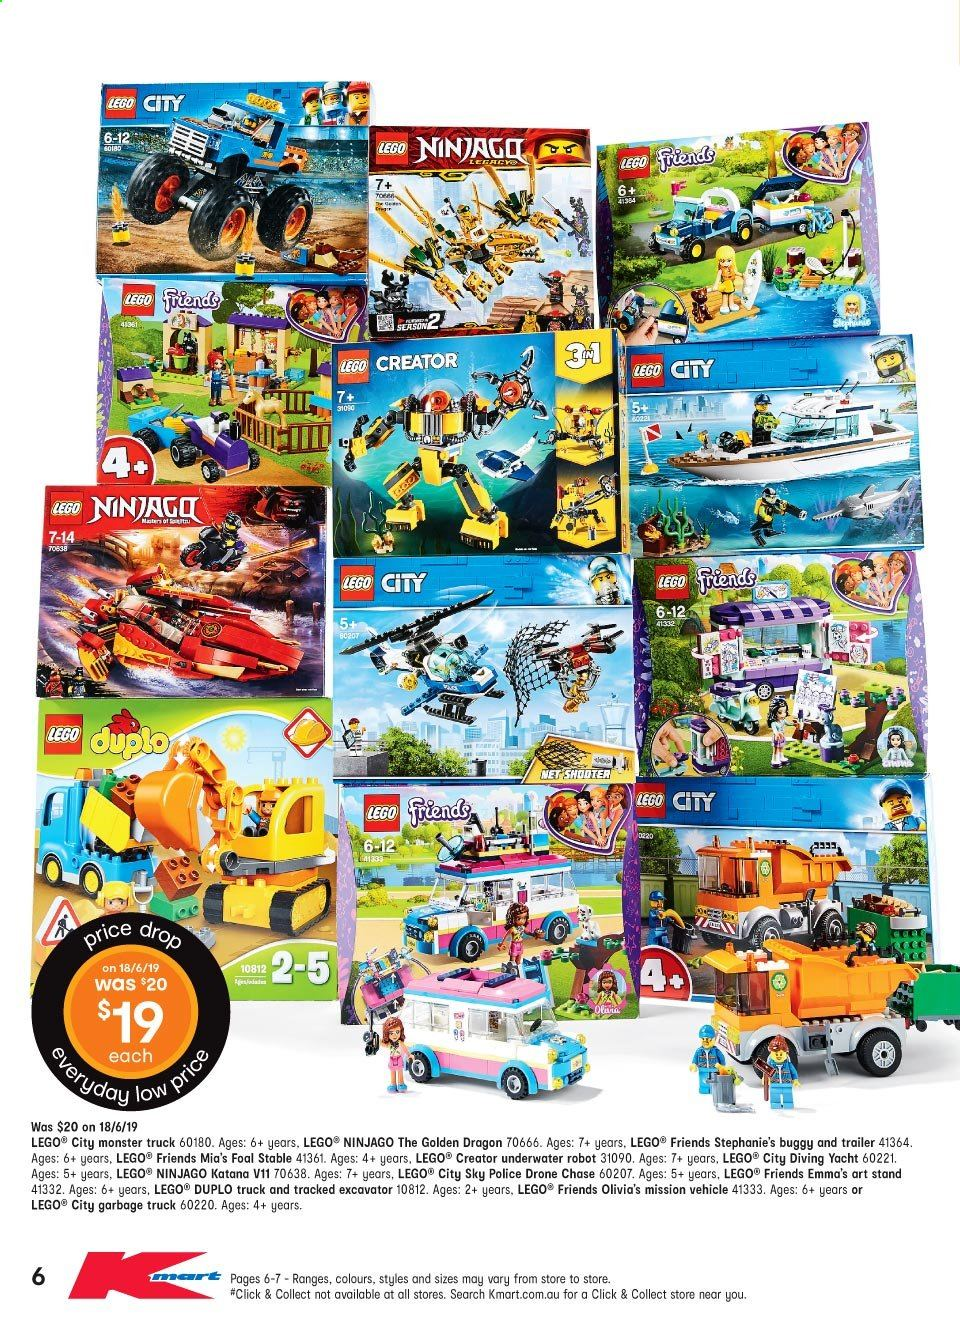 Kmart catalogue and weekly specials 20 6 2019 - 10 7 2019 | Au